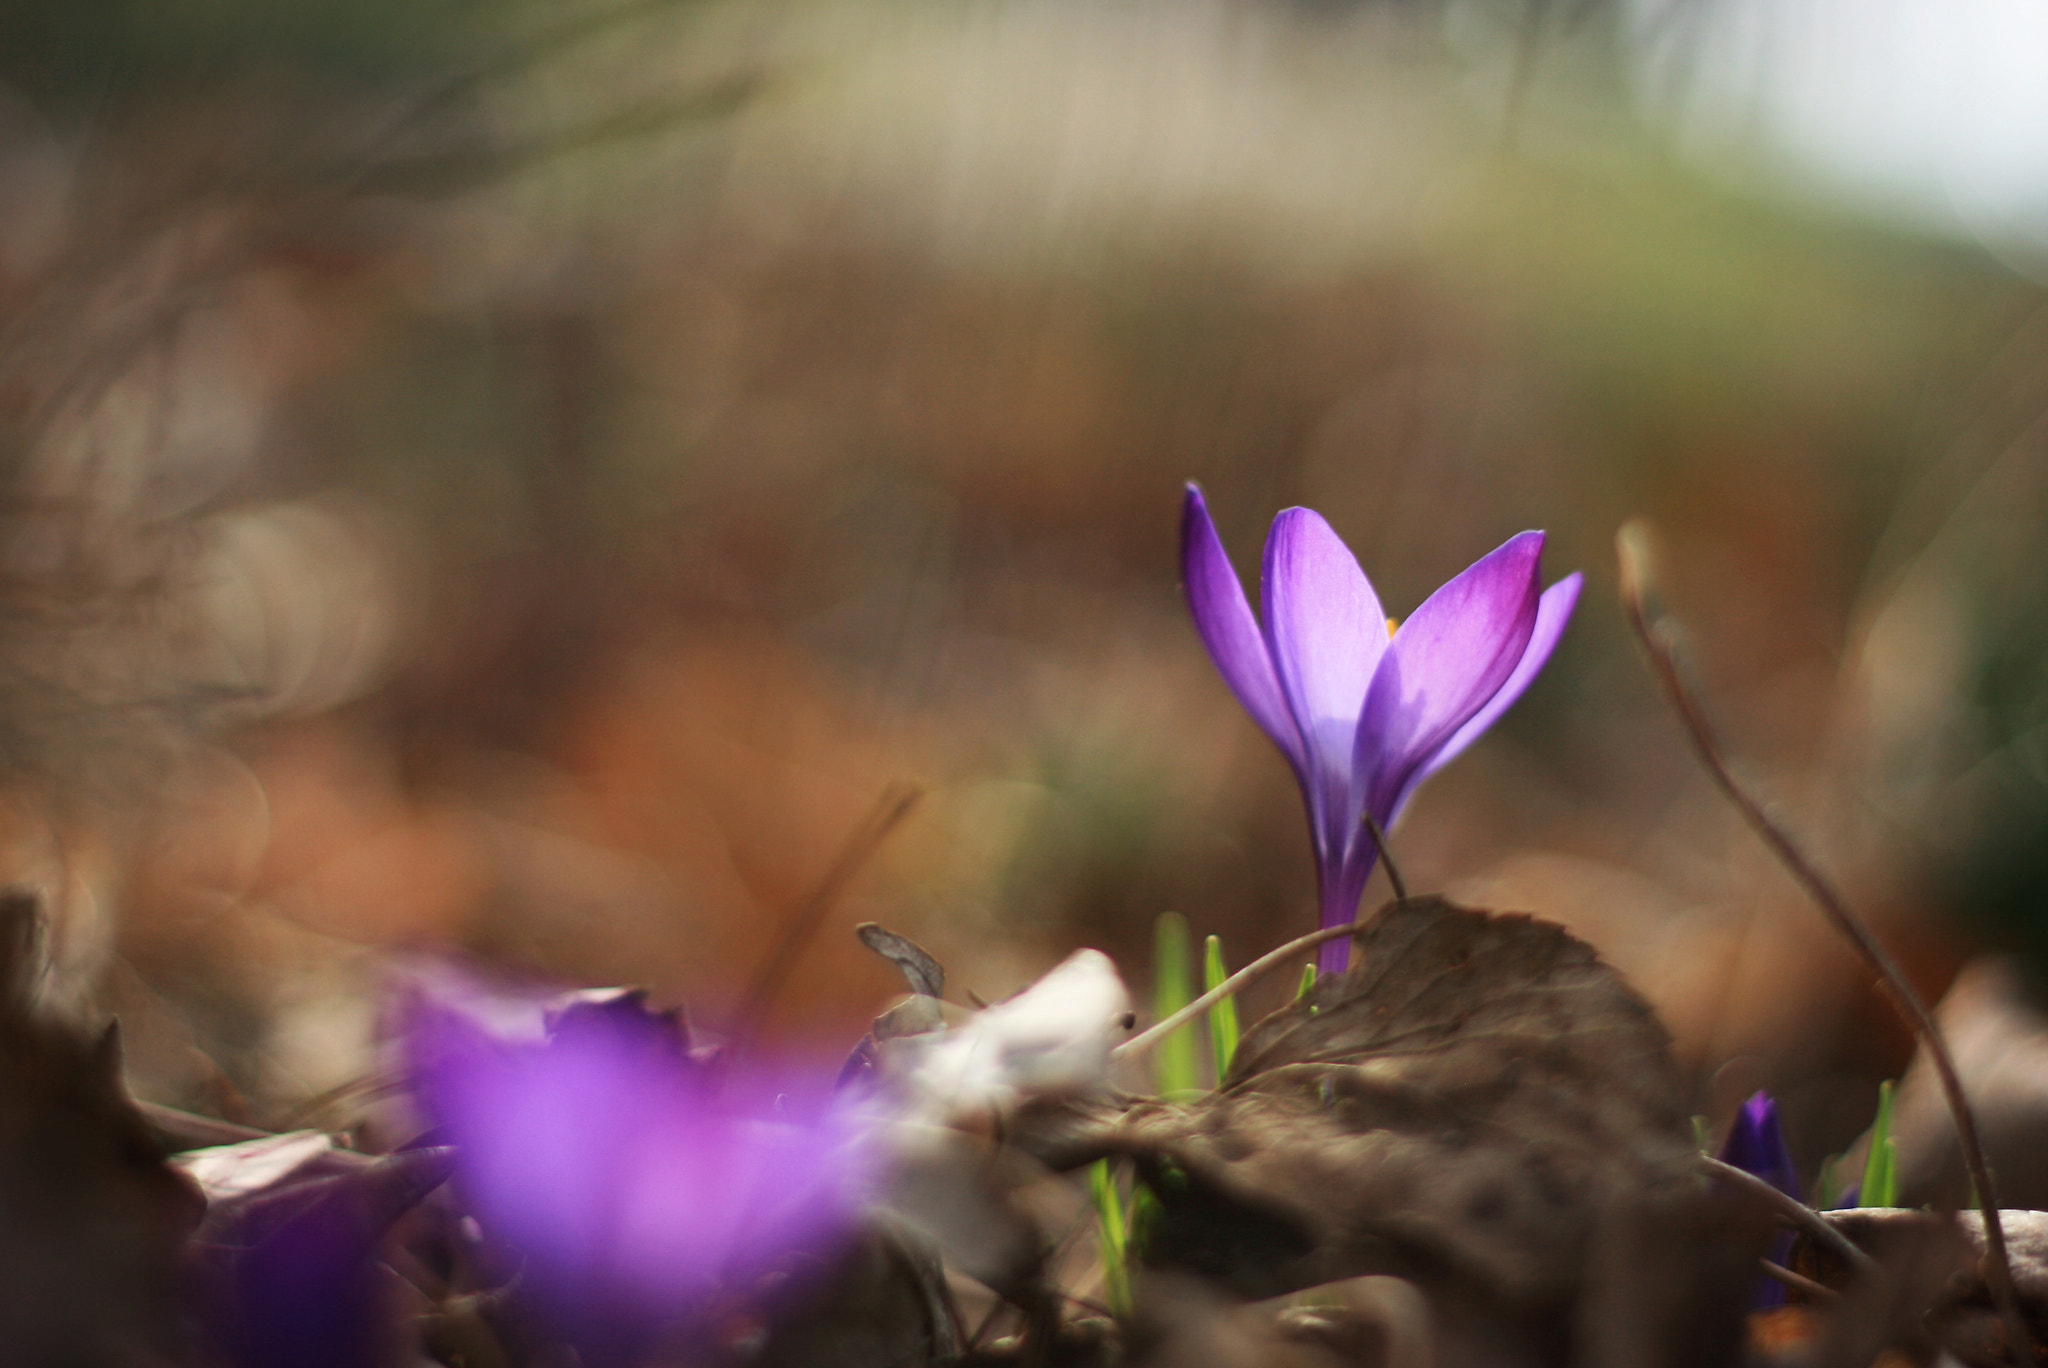 Photograph purple crocus by Jennifer Nish on 500px